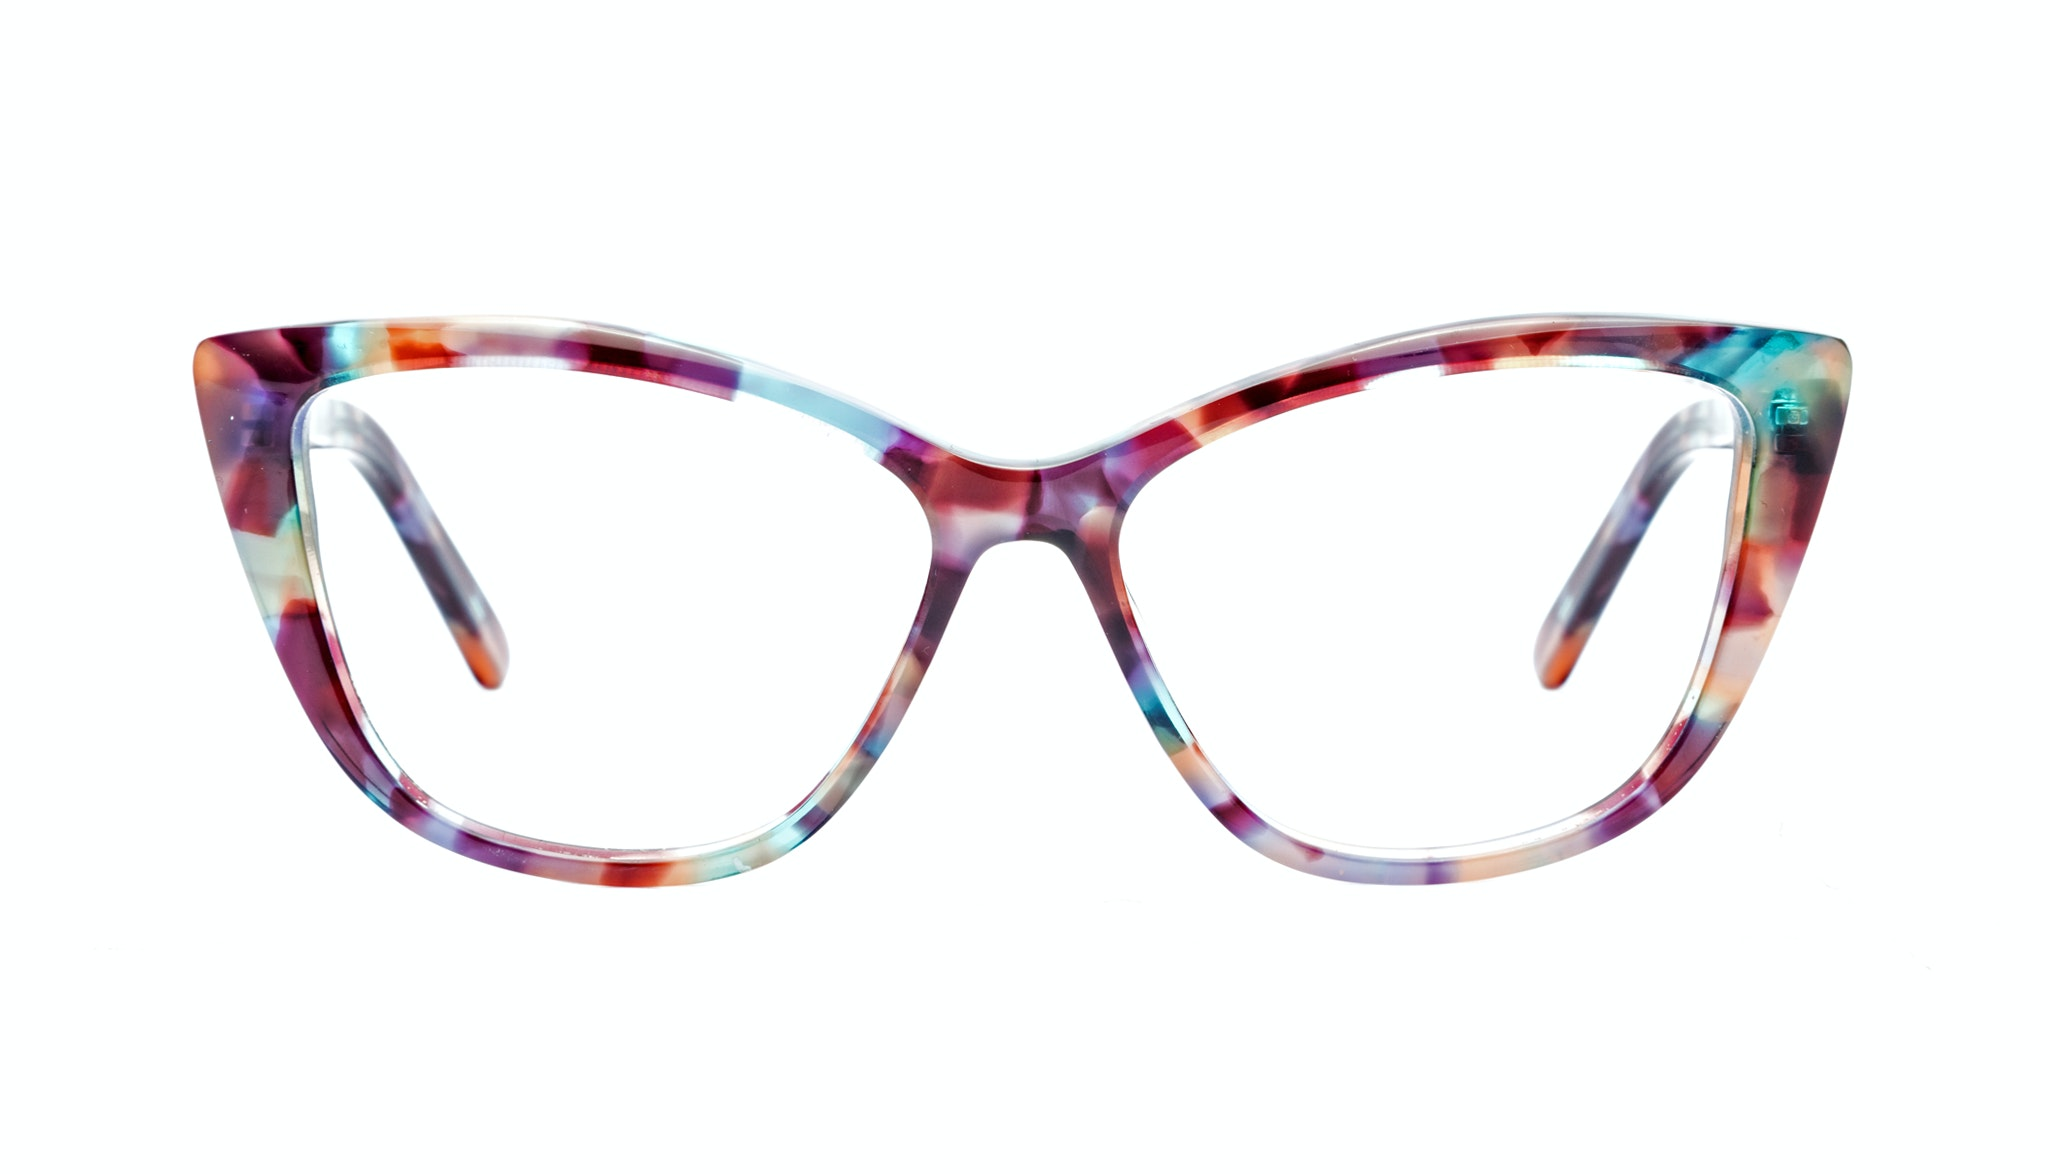 Affordable Fashion Glasses Cat Eye Eyeglasses Women Dolled Up Dazzling